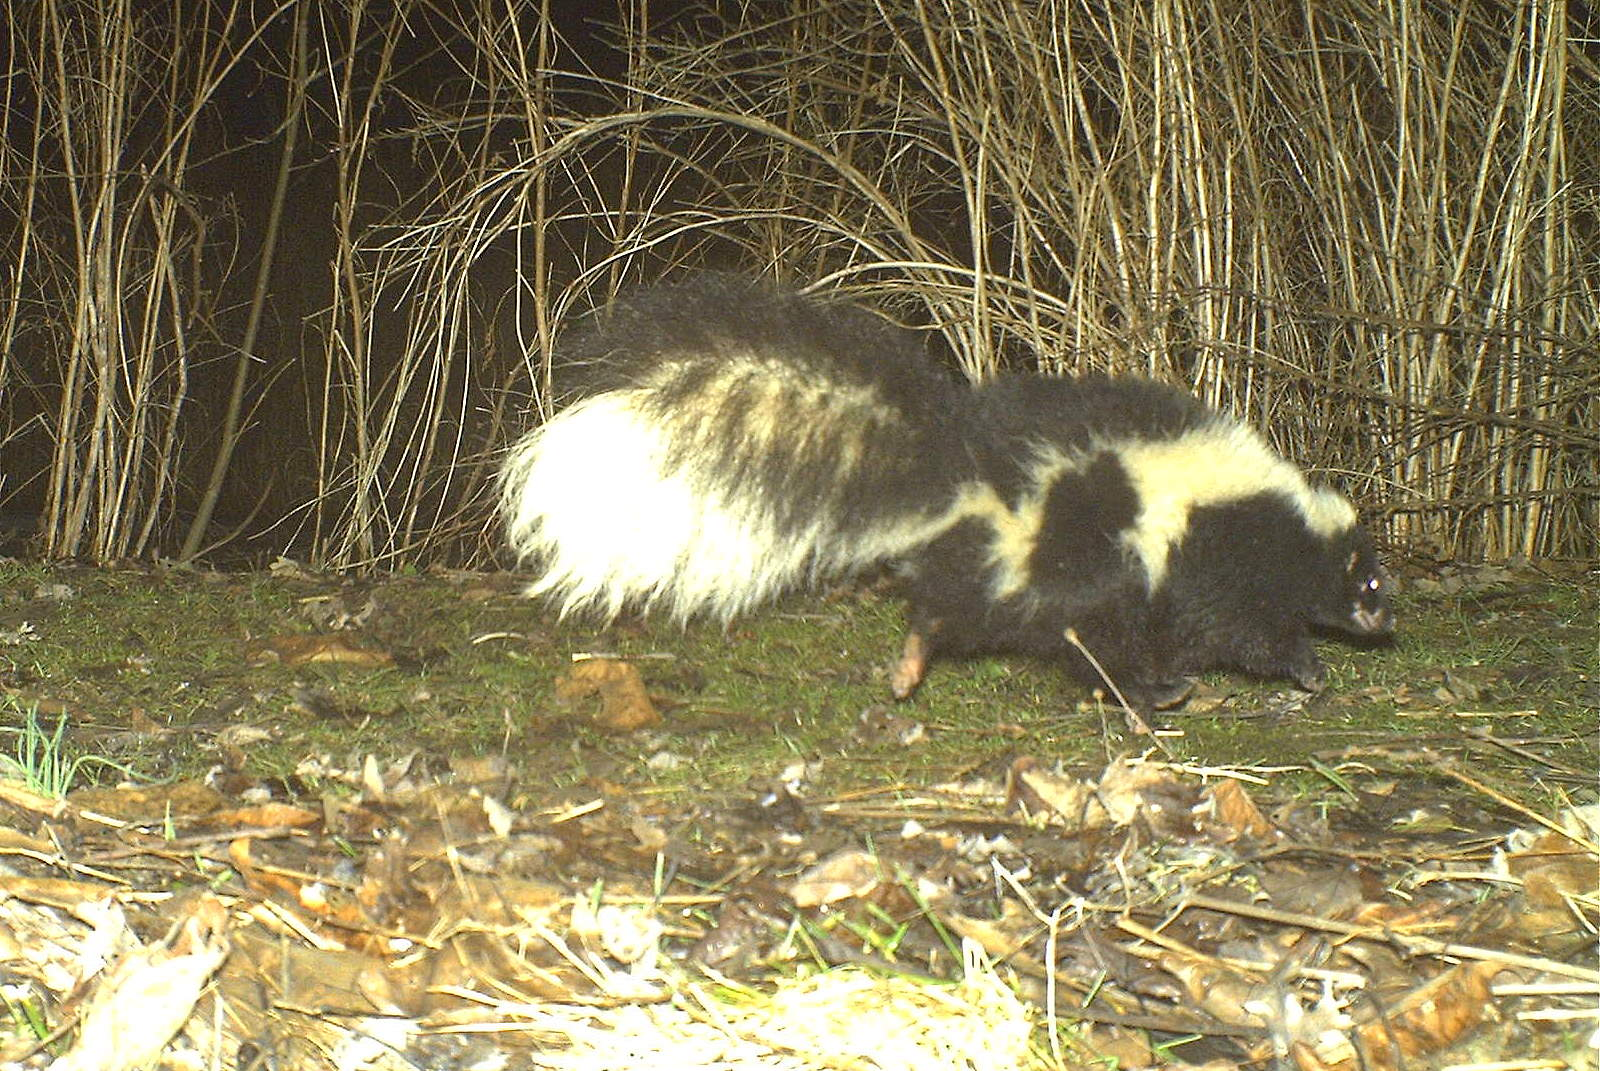 Striped Skunk (Seneca Falls, NY 3/11)